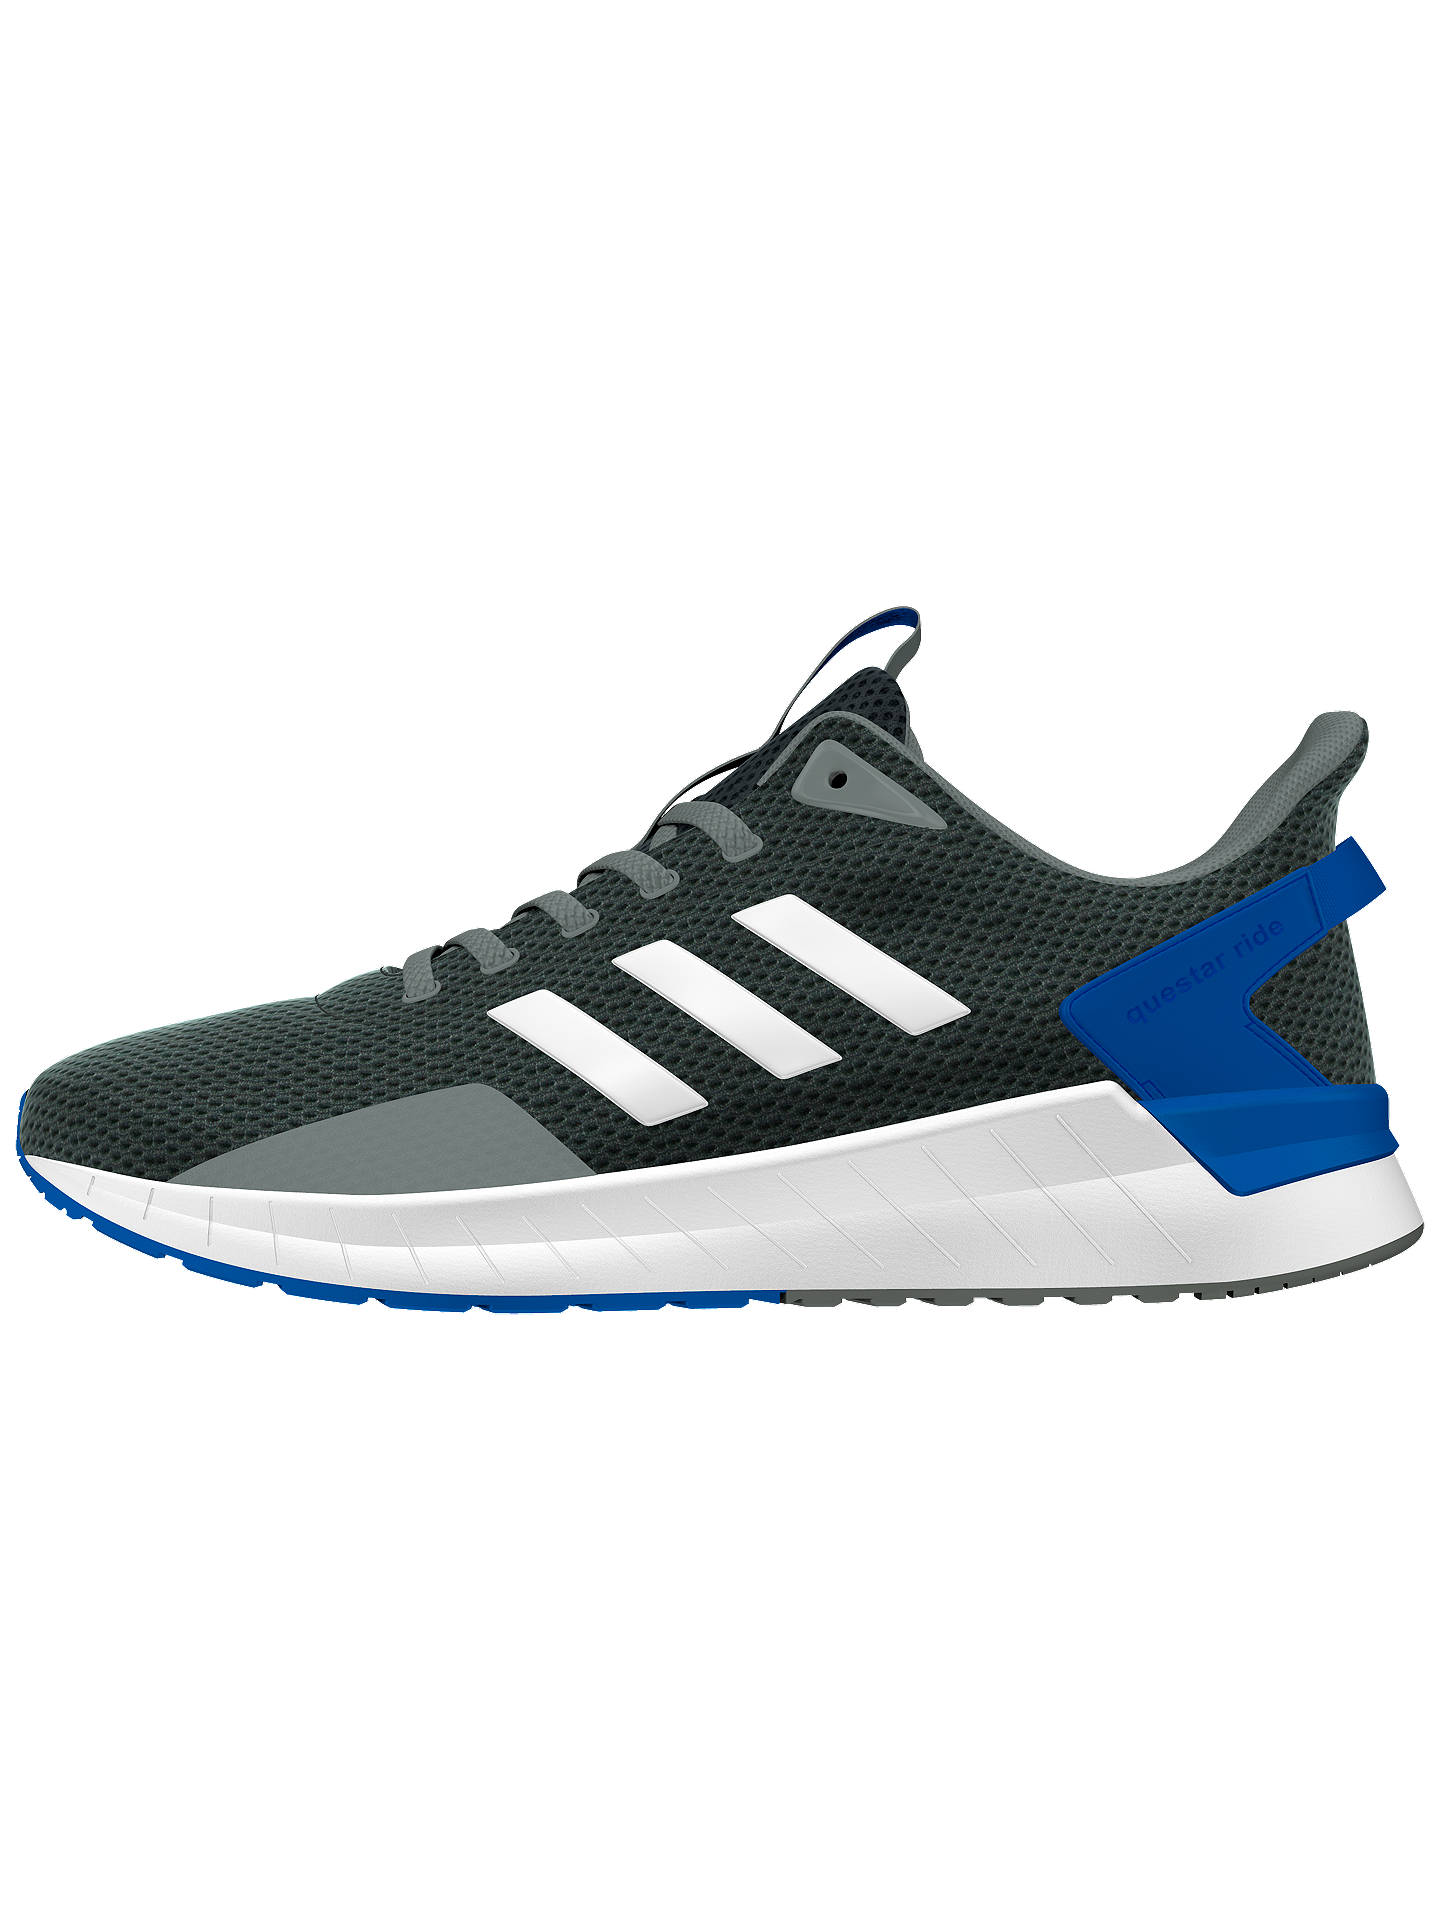 wholesale dealer 5fbcb 97474 Buyadidas Questar Ride Mens Running Shoes, Grey, 7 Online at johnlewis. ...